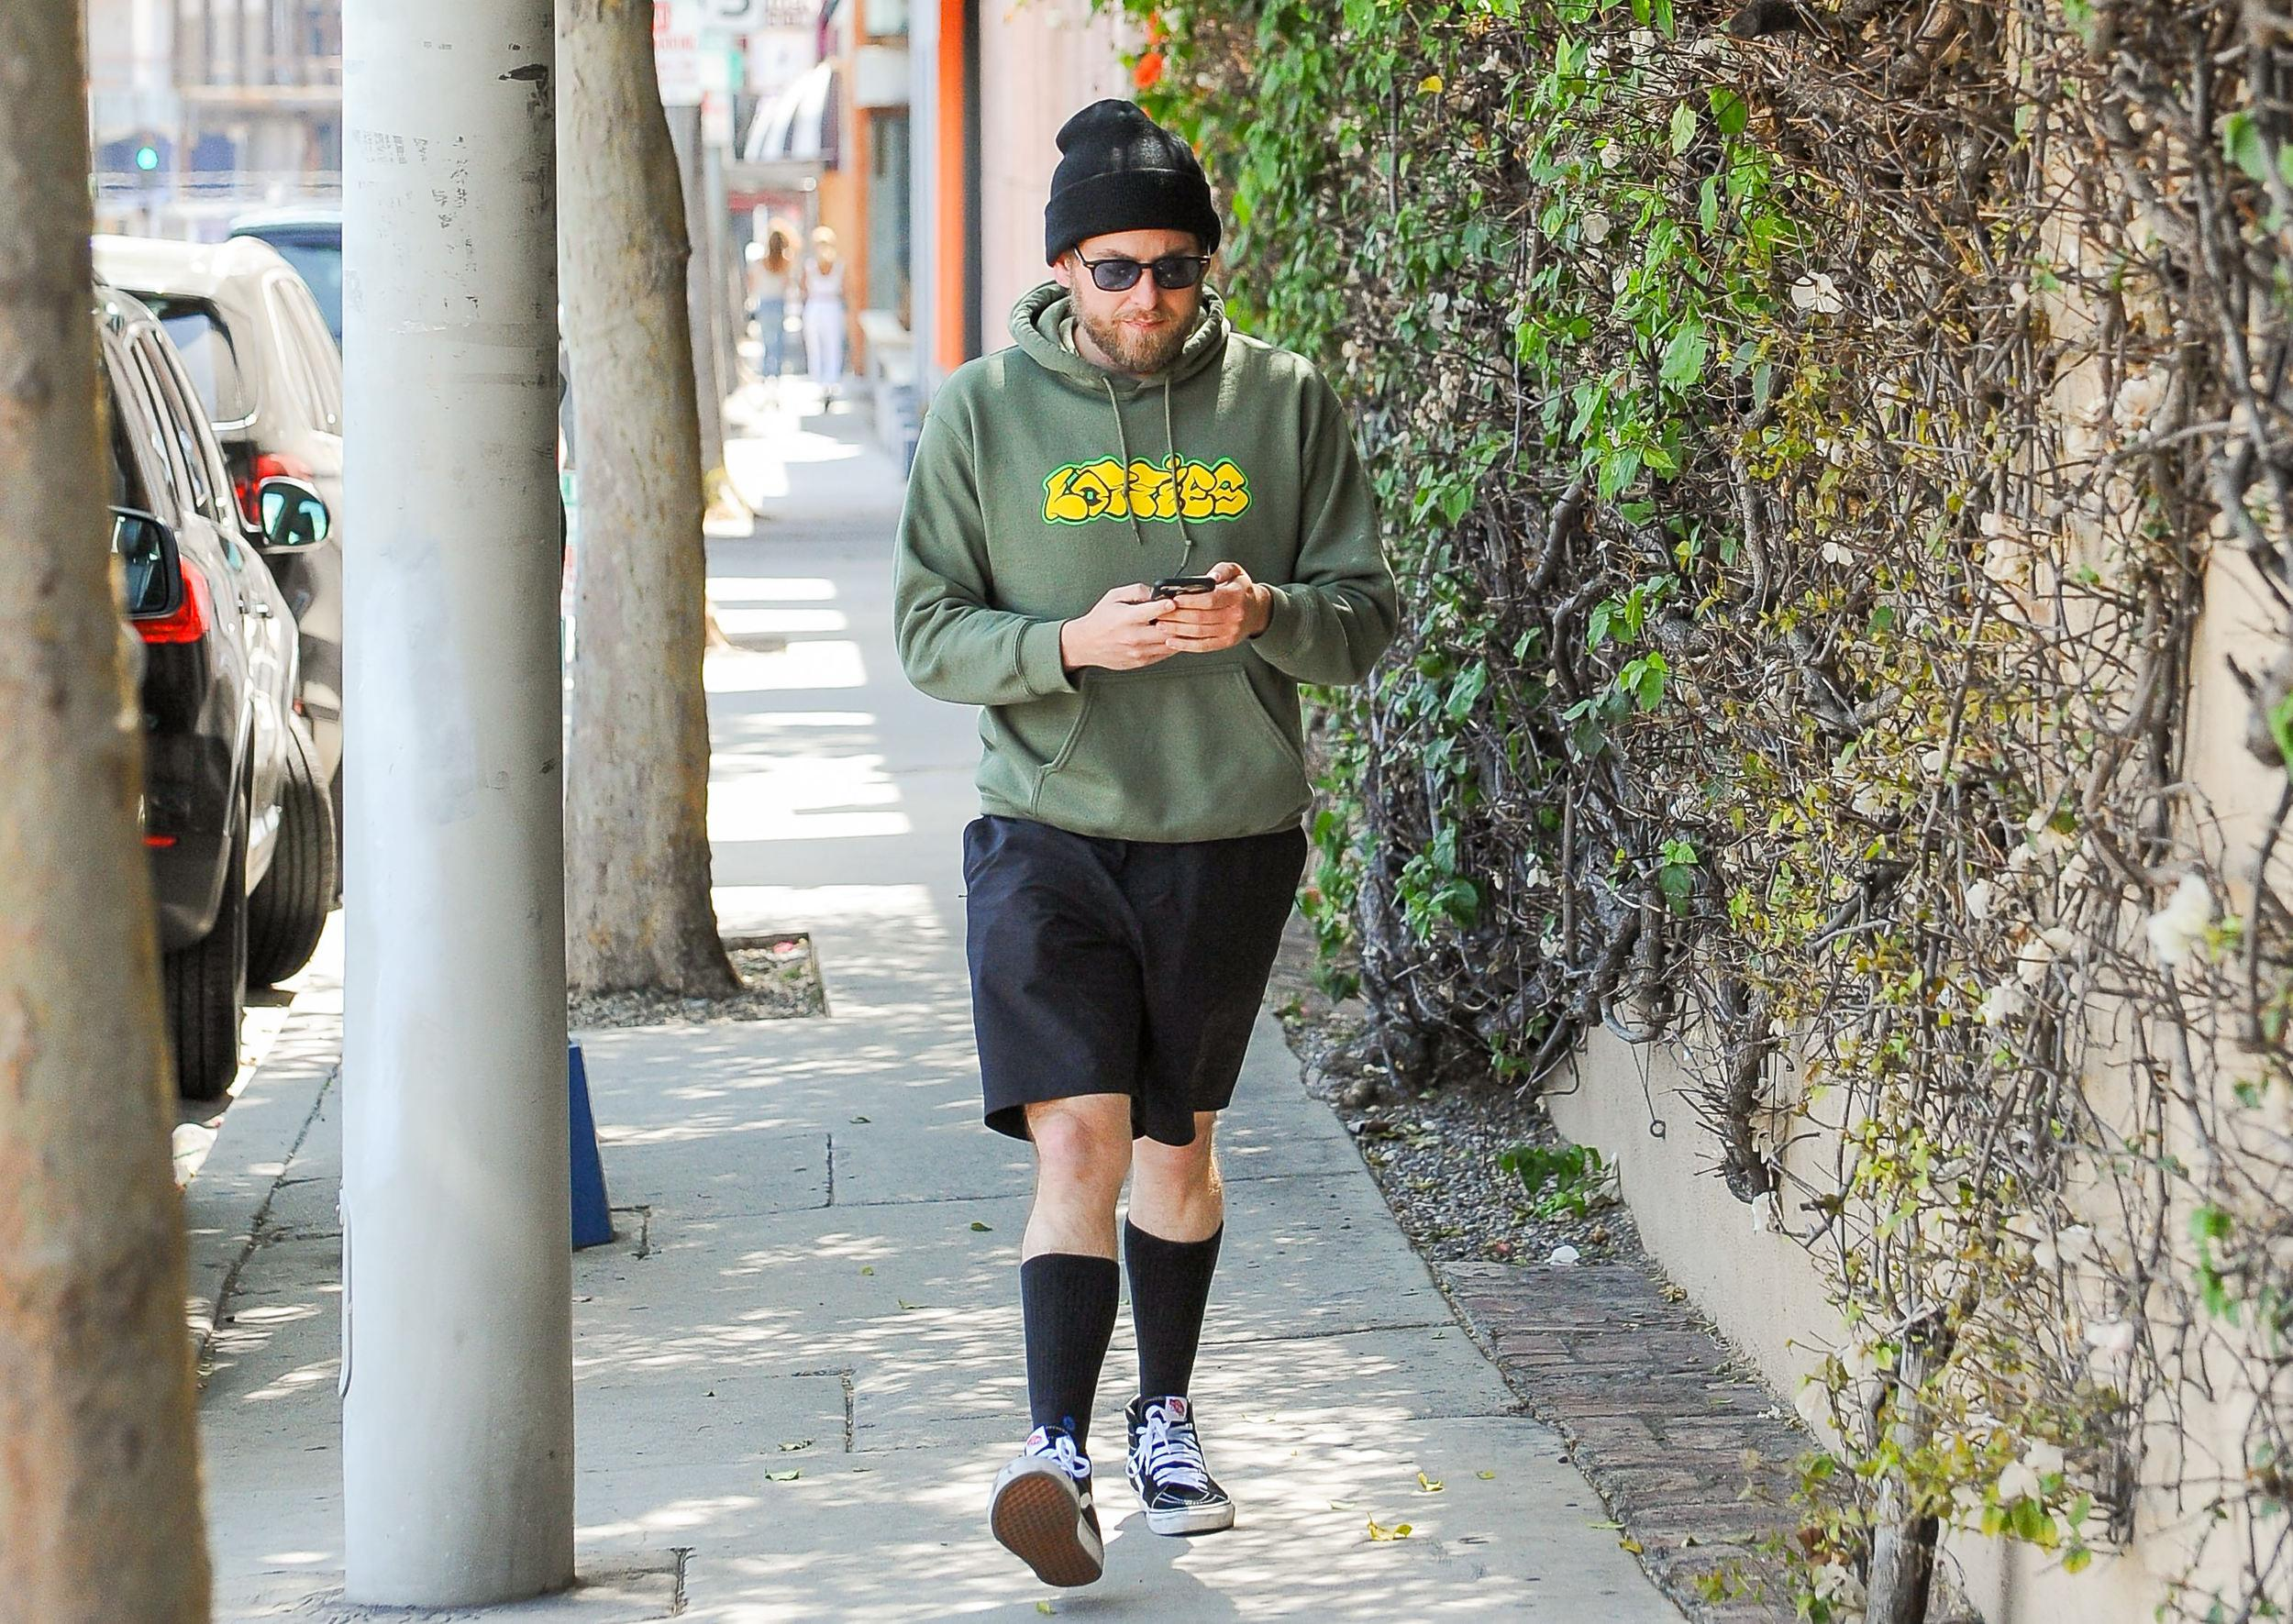 LOS ANGELES, CA - MAY 16: Jonah Hill is seen on May 16, 2017 in Los Angeles, California.  (Photo by BG005/Bauer-Griffin/GC Images)